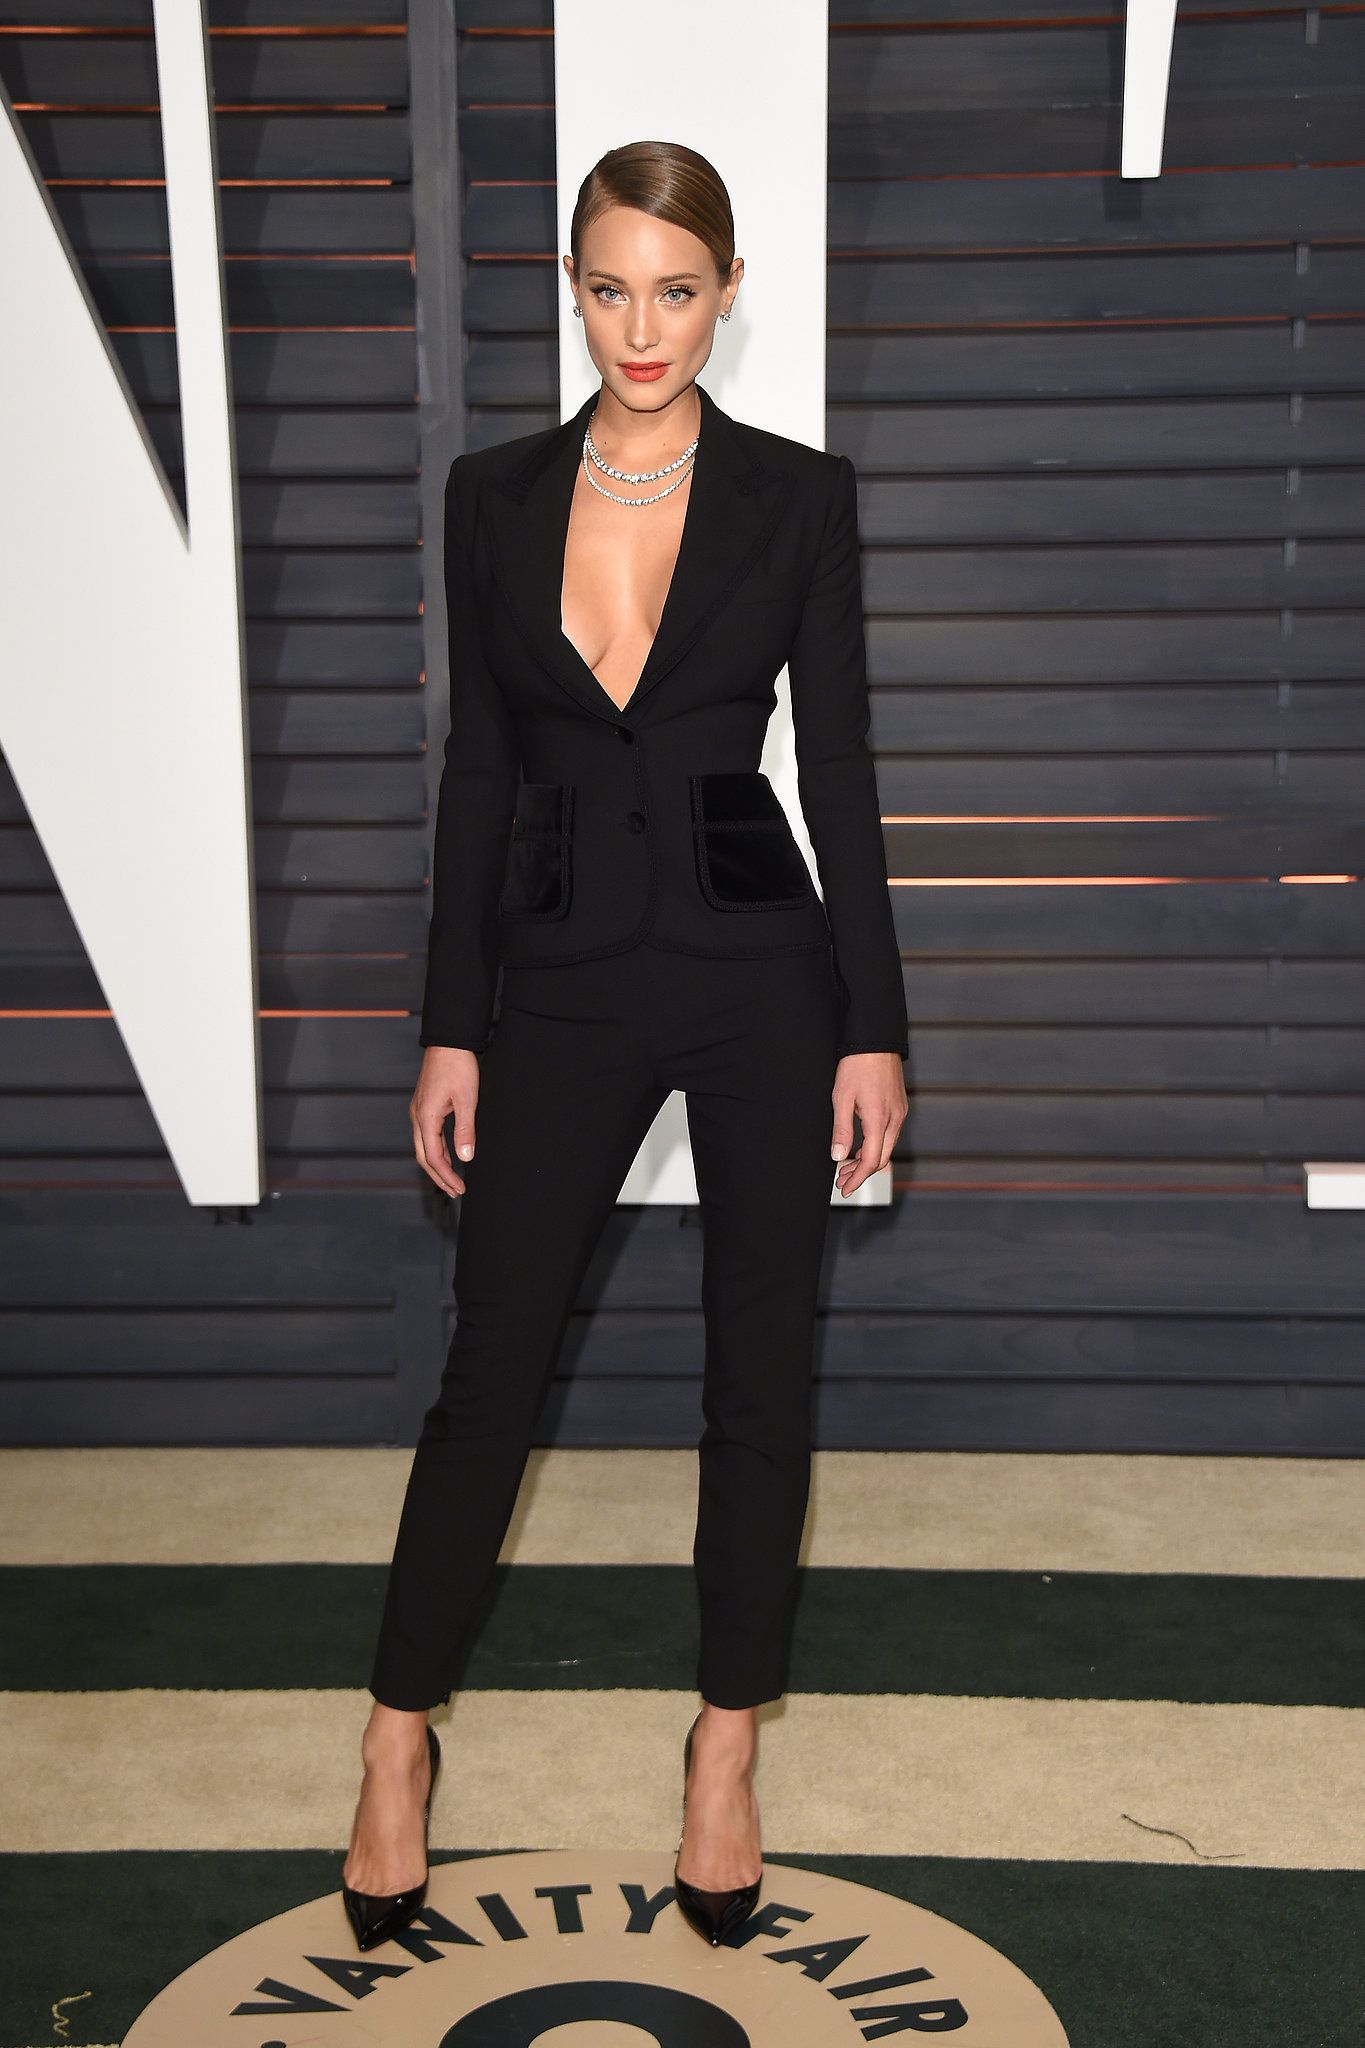 47972351de5ed6 At the Vanity Fair party, the supermodel worked a suit the ultrasexy way   tight tailoring, black pumps, and a deep plunging neckline.